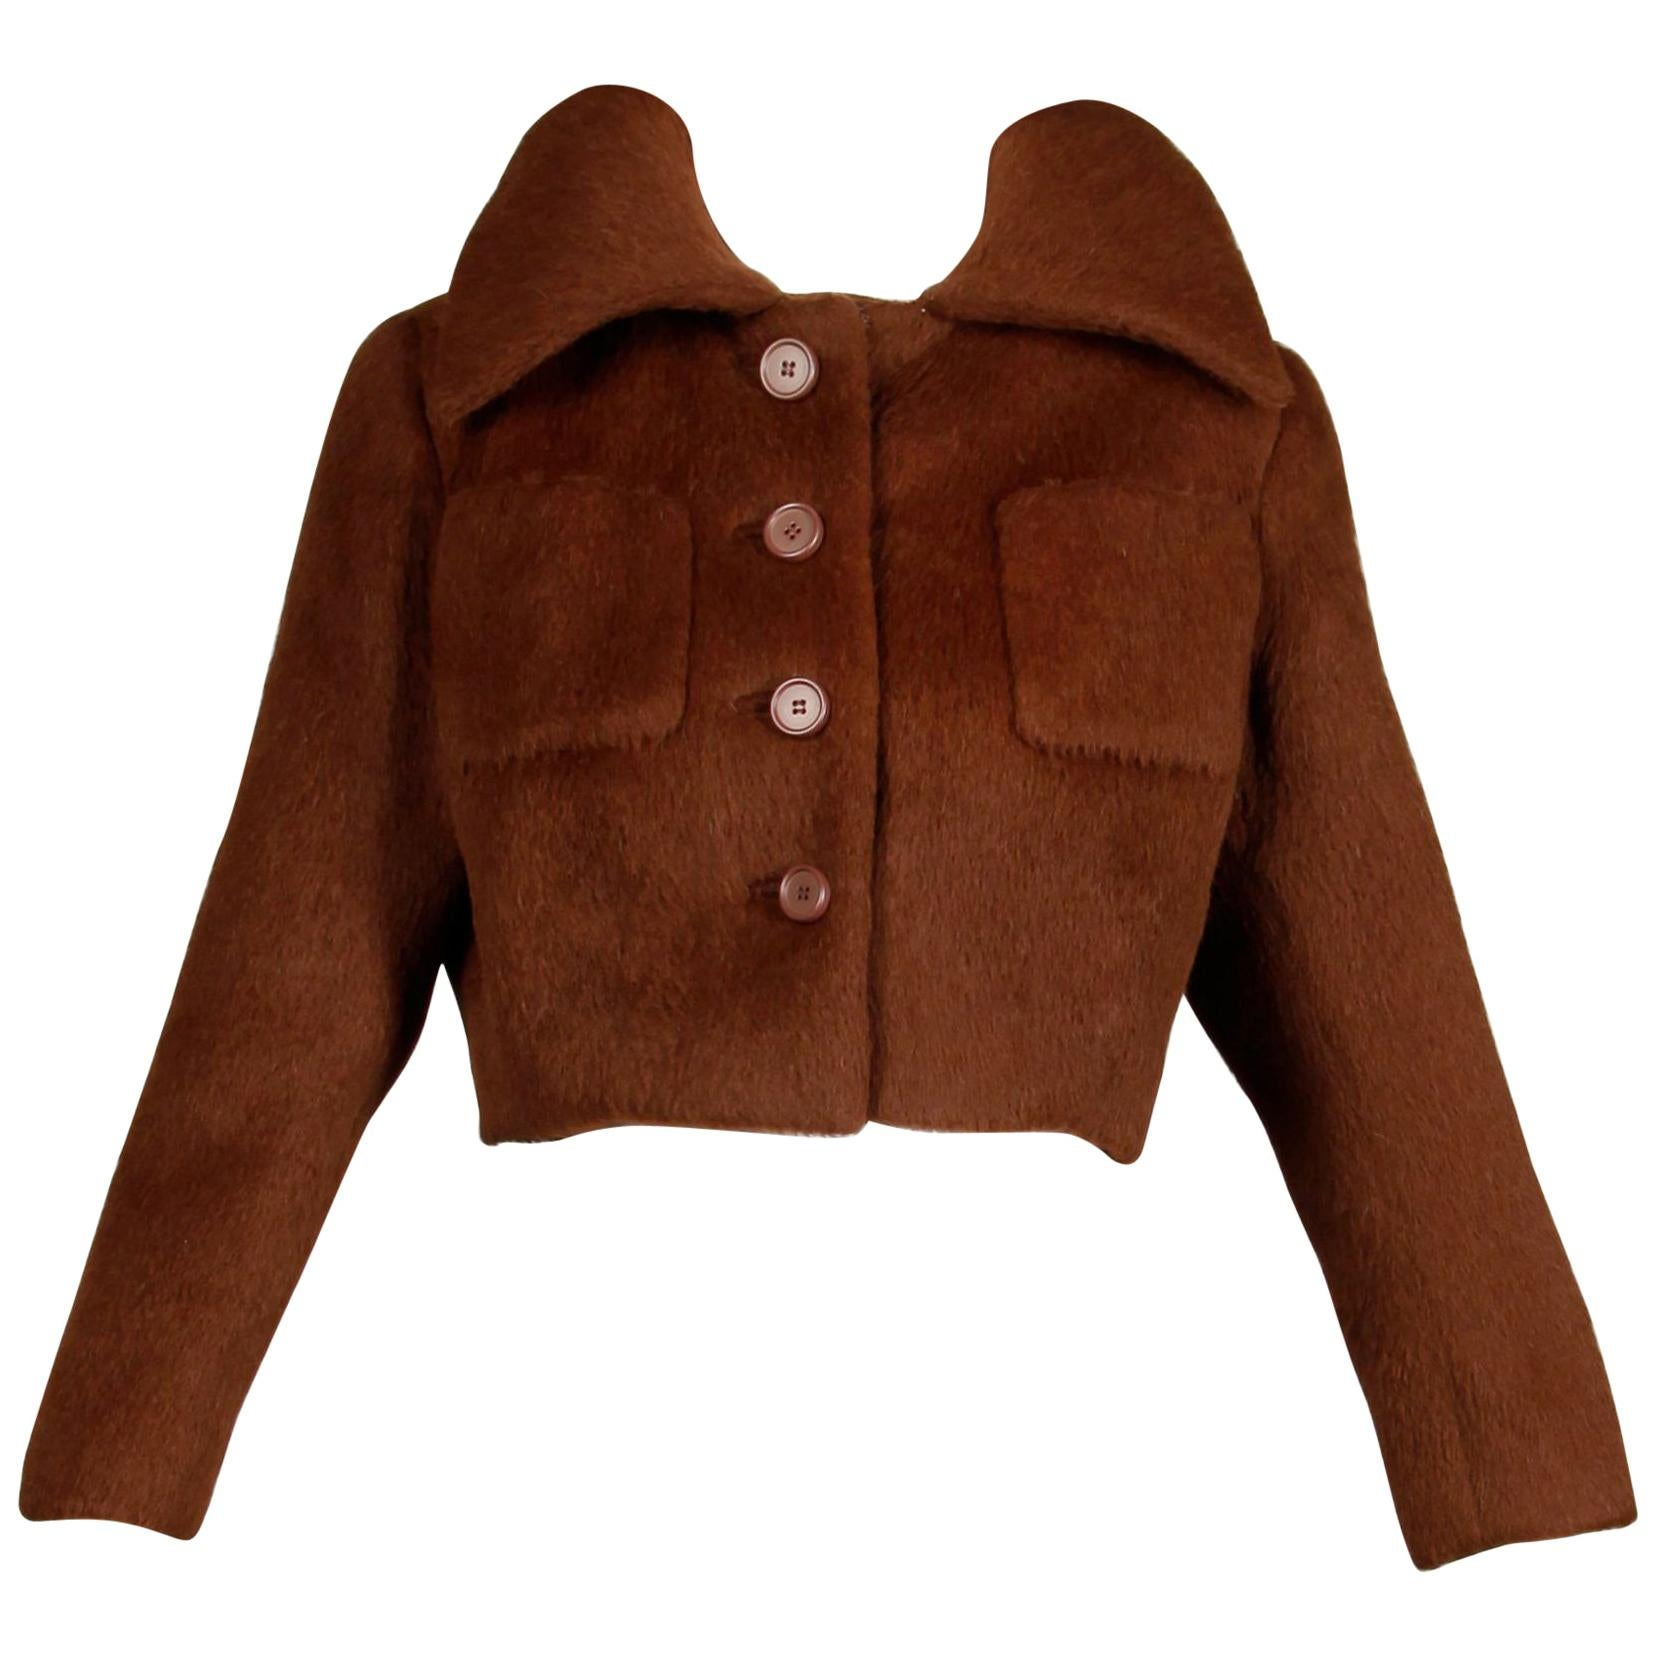 1960s Norman Norell Vintage Jacket